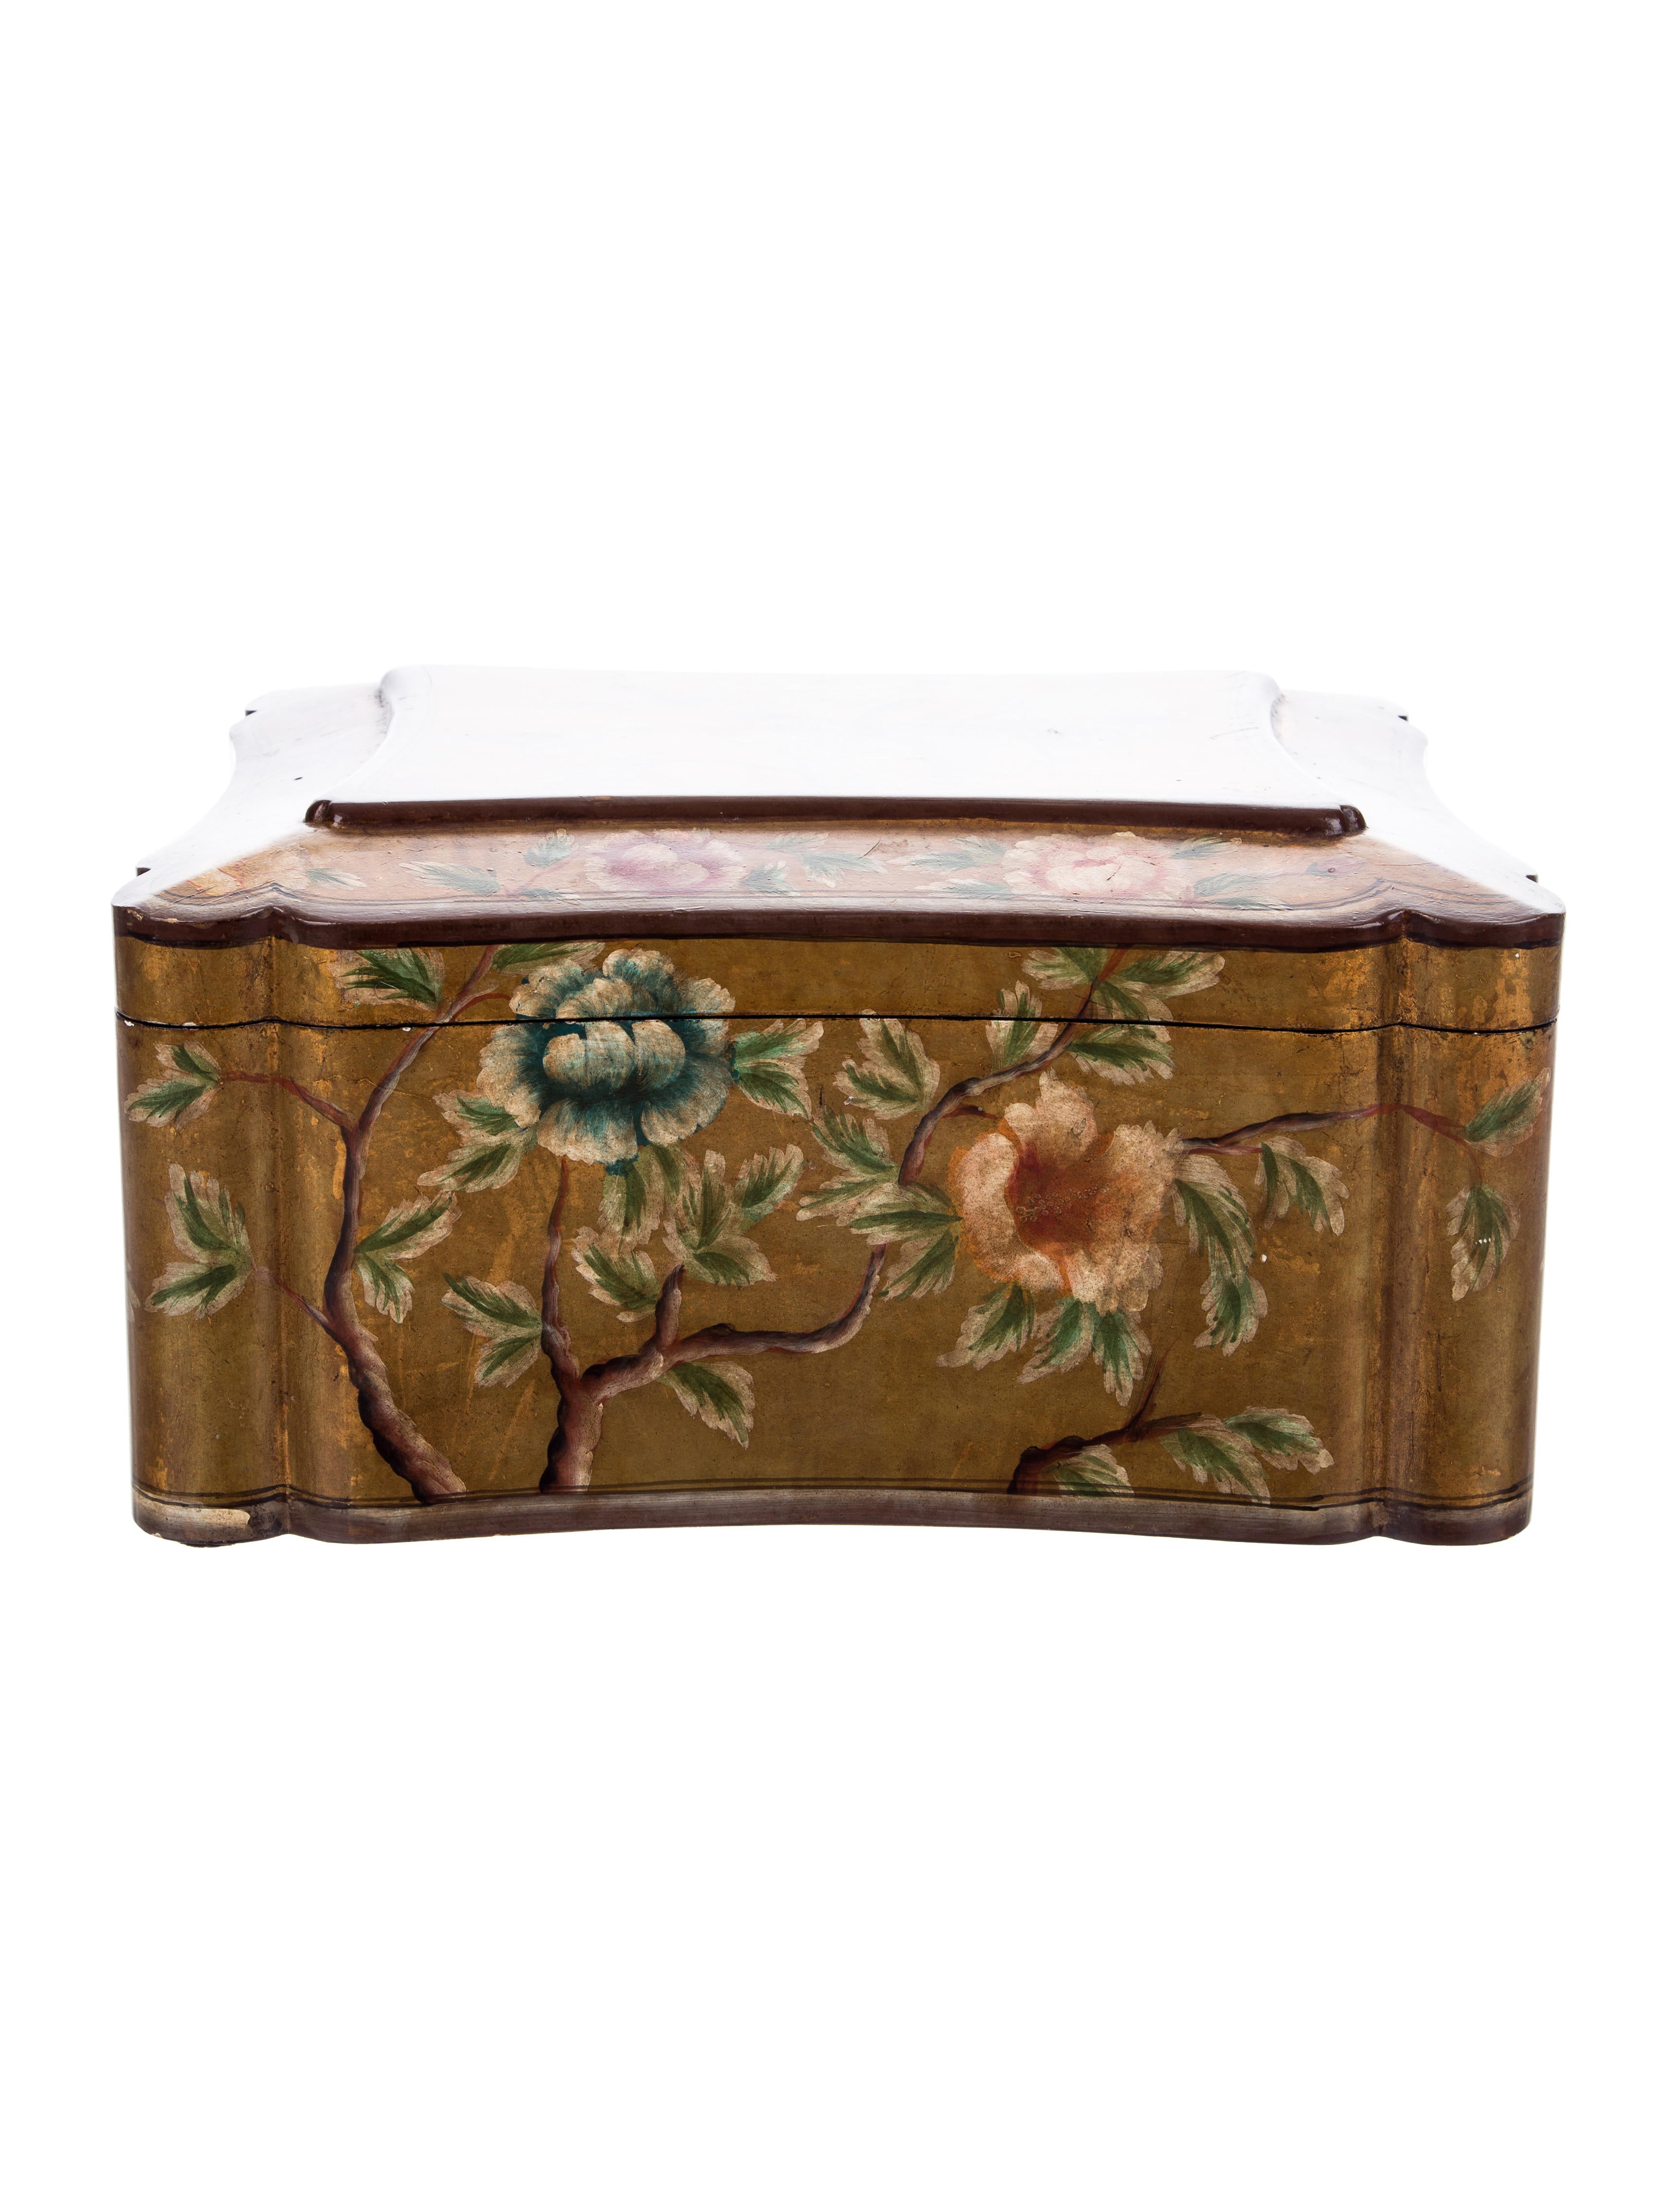 hand painted wooden chest decor and accessories On painted wooden chest